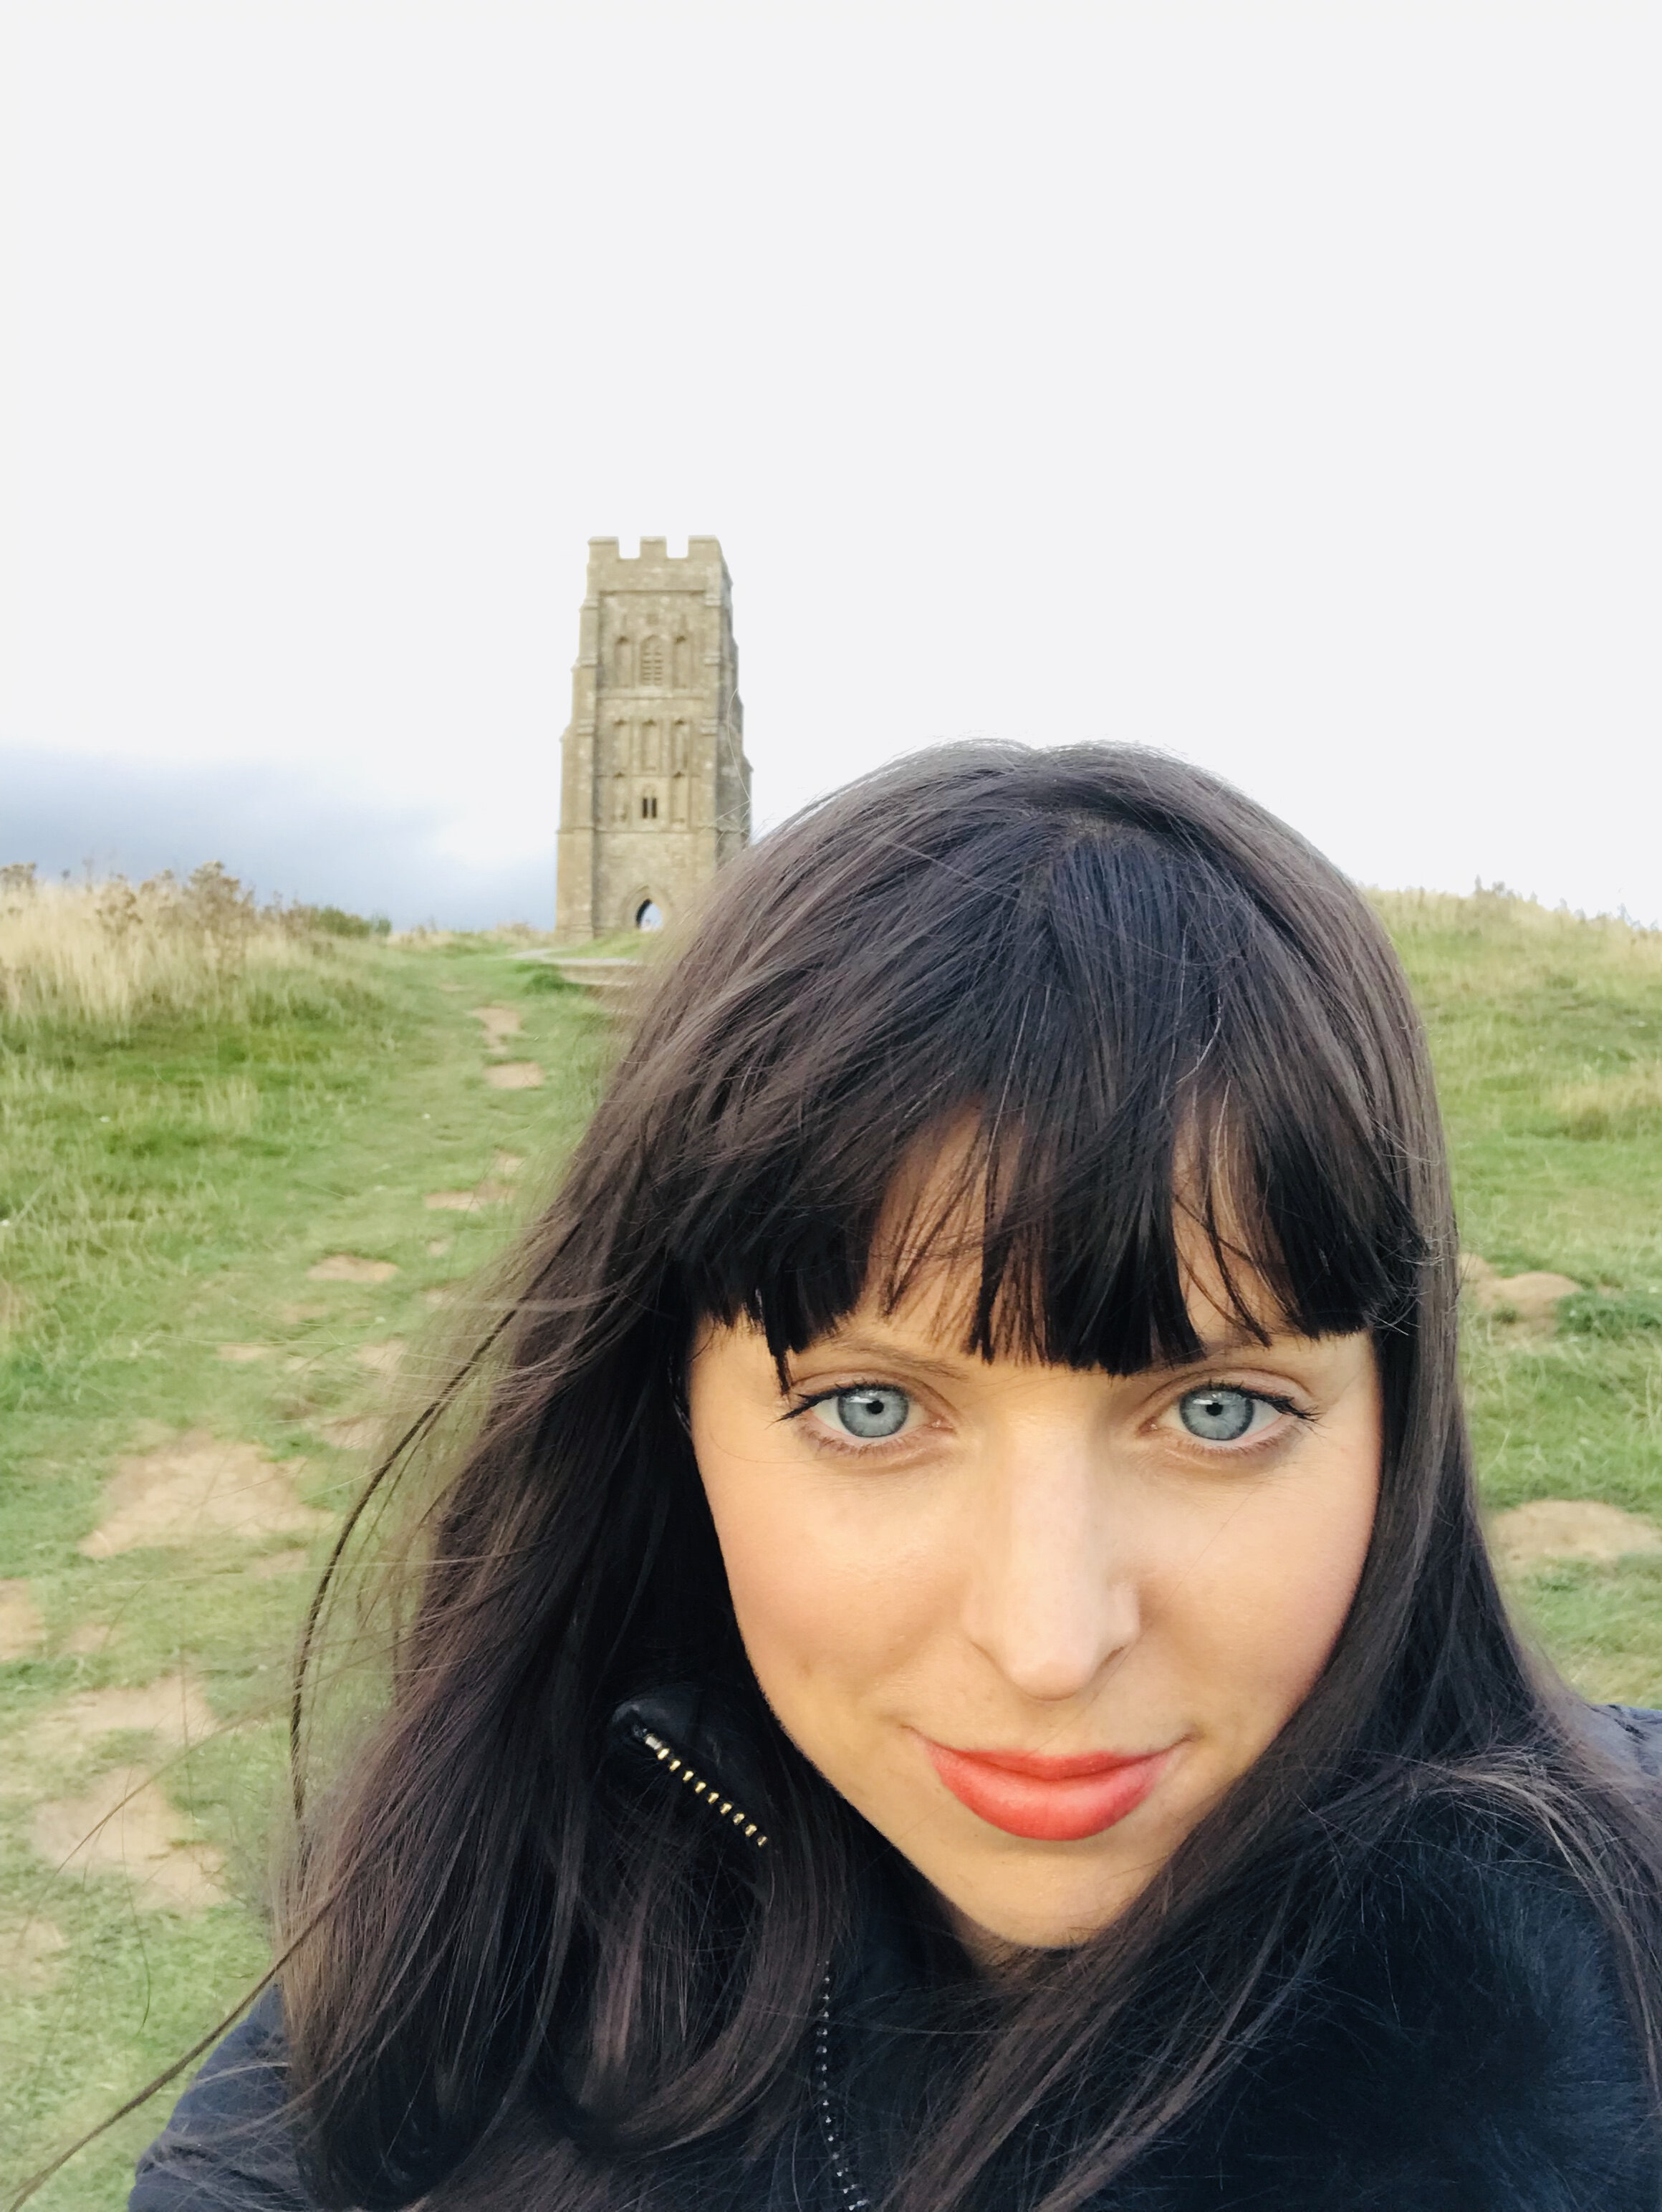 MEET MELANIE - My passion is to help people find clarity, direction and find wellness on a mental, physical, emotional and spiritual level, utilising Sacred Therapies that nurture the spirit and honour the self.I approach my sessions with empathy and compassion, holding space for my clients to heal, de-stress, rejuvenate, re-balance and recharge.